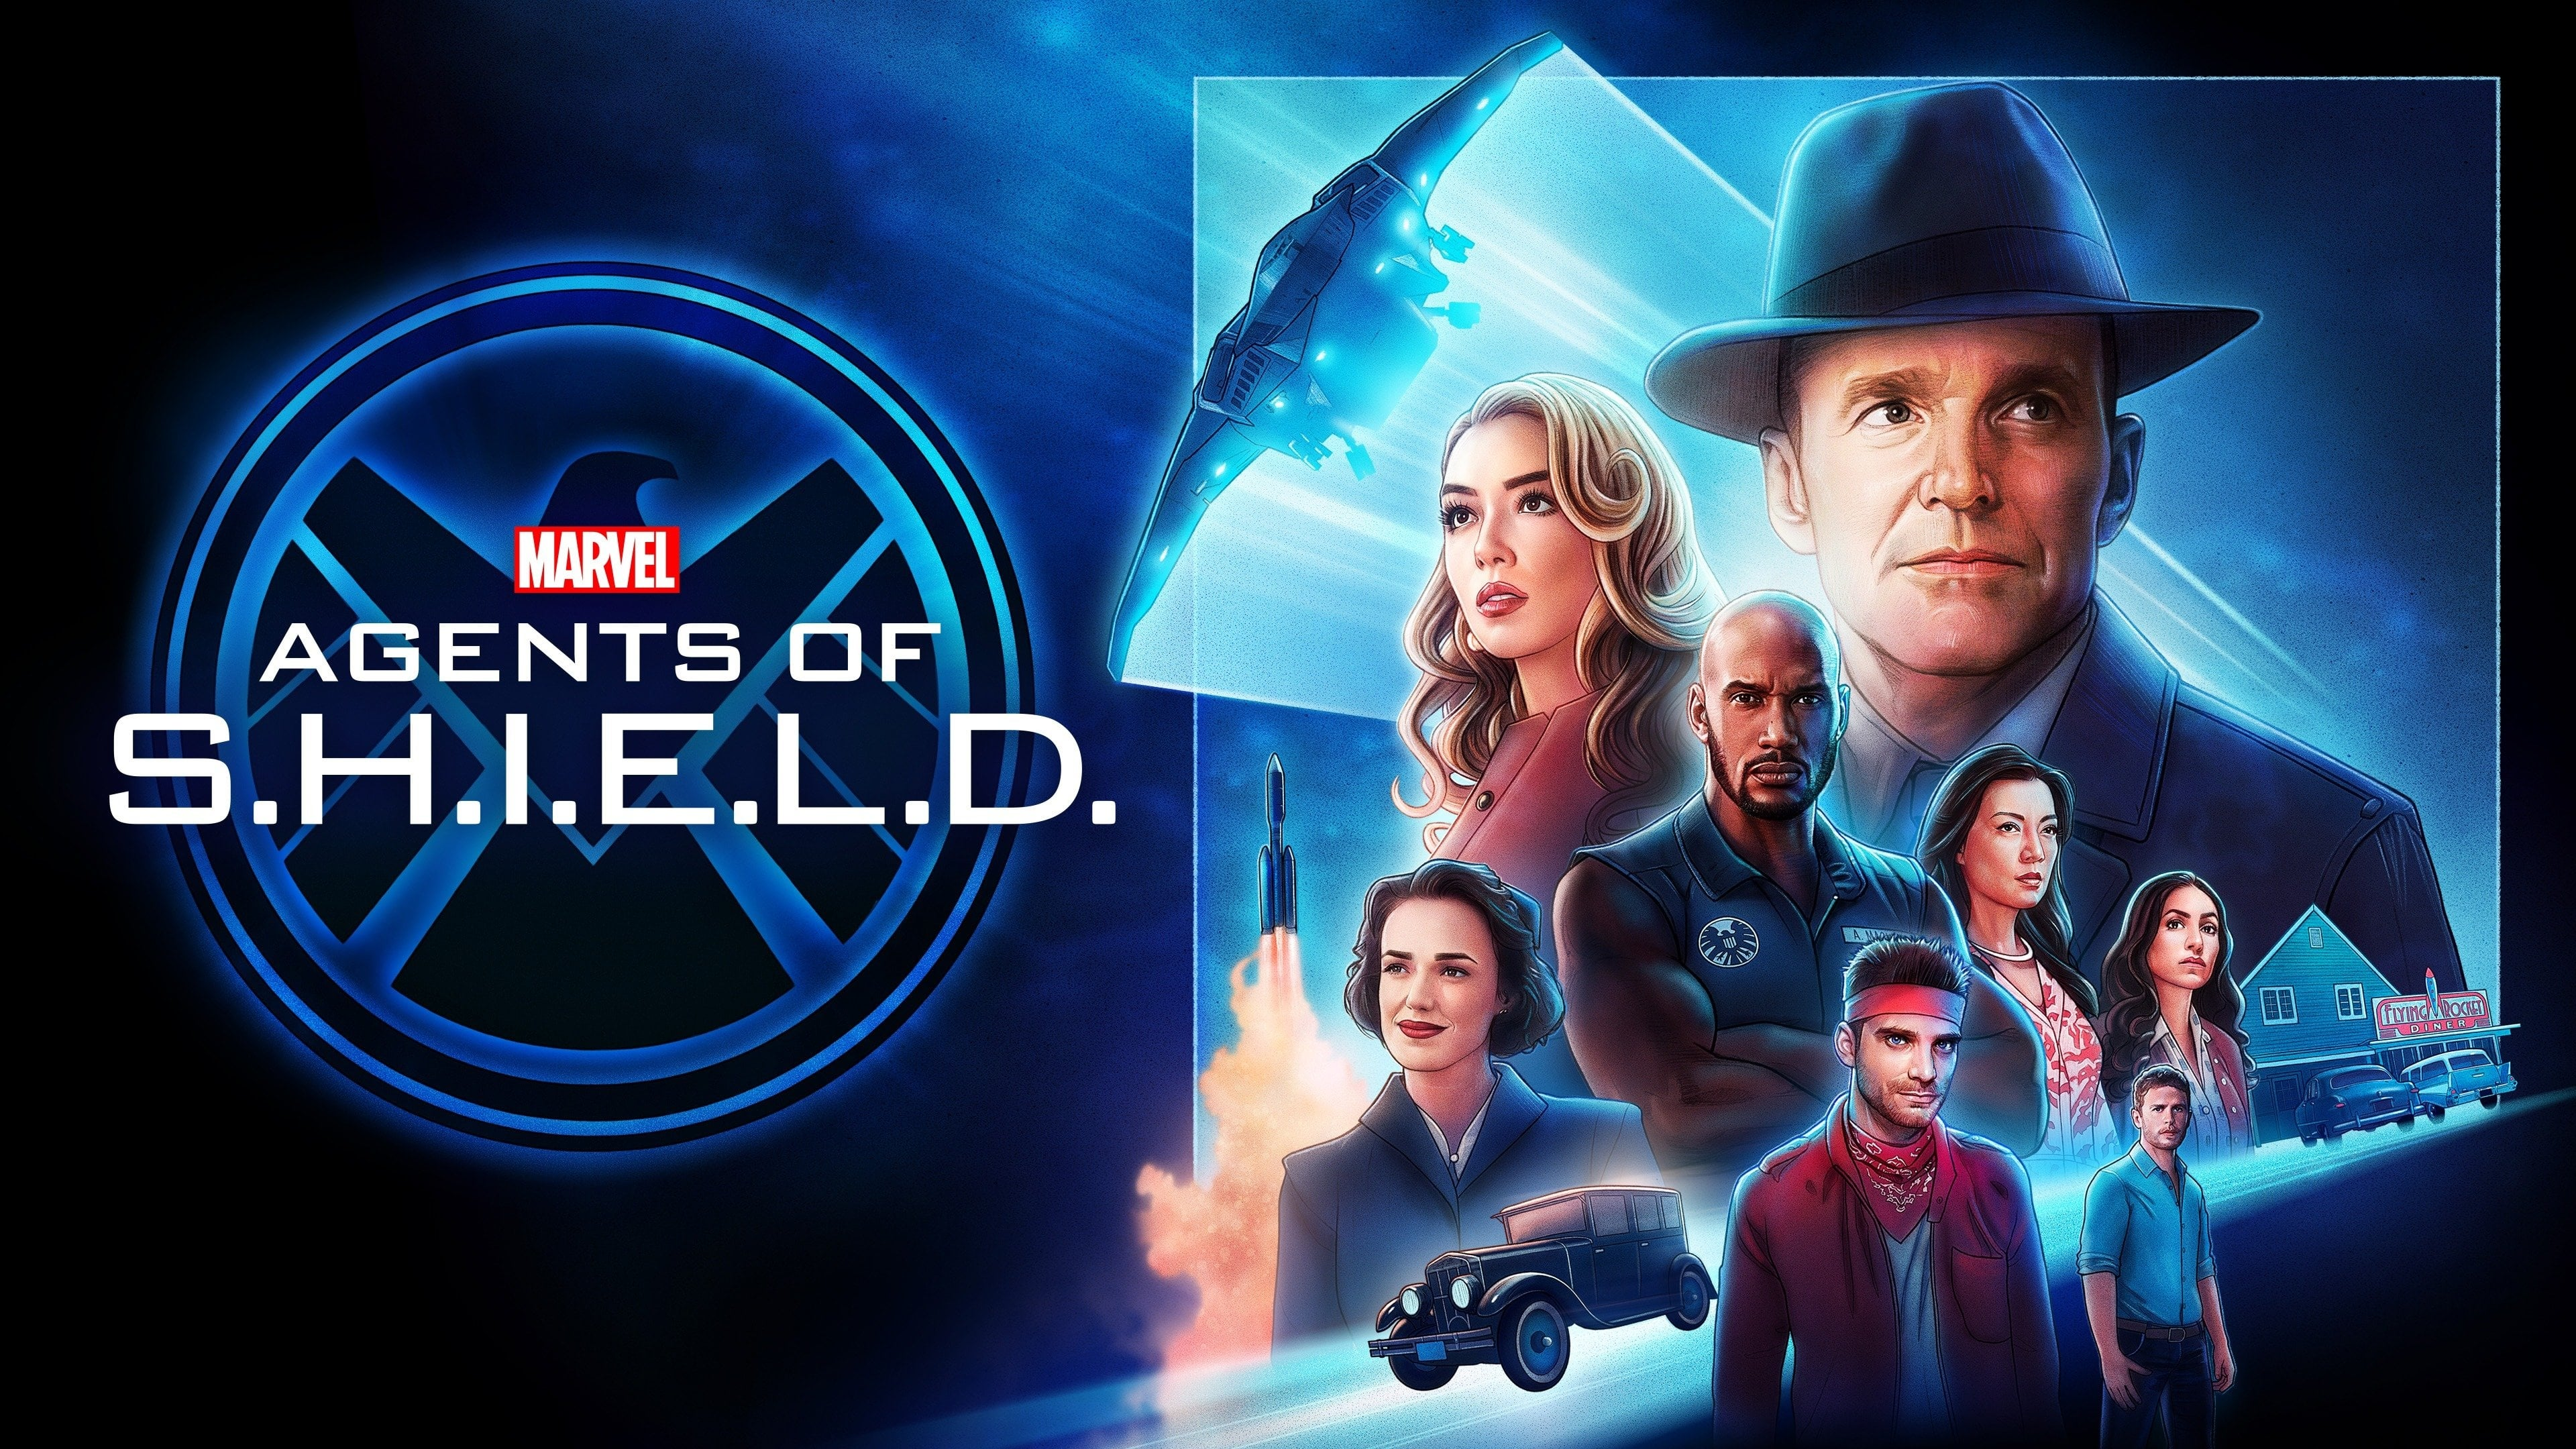 Marvel's Agents of S.H.I.E.L.D. - Season 2